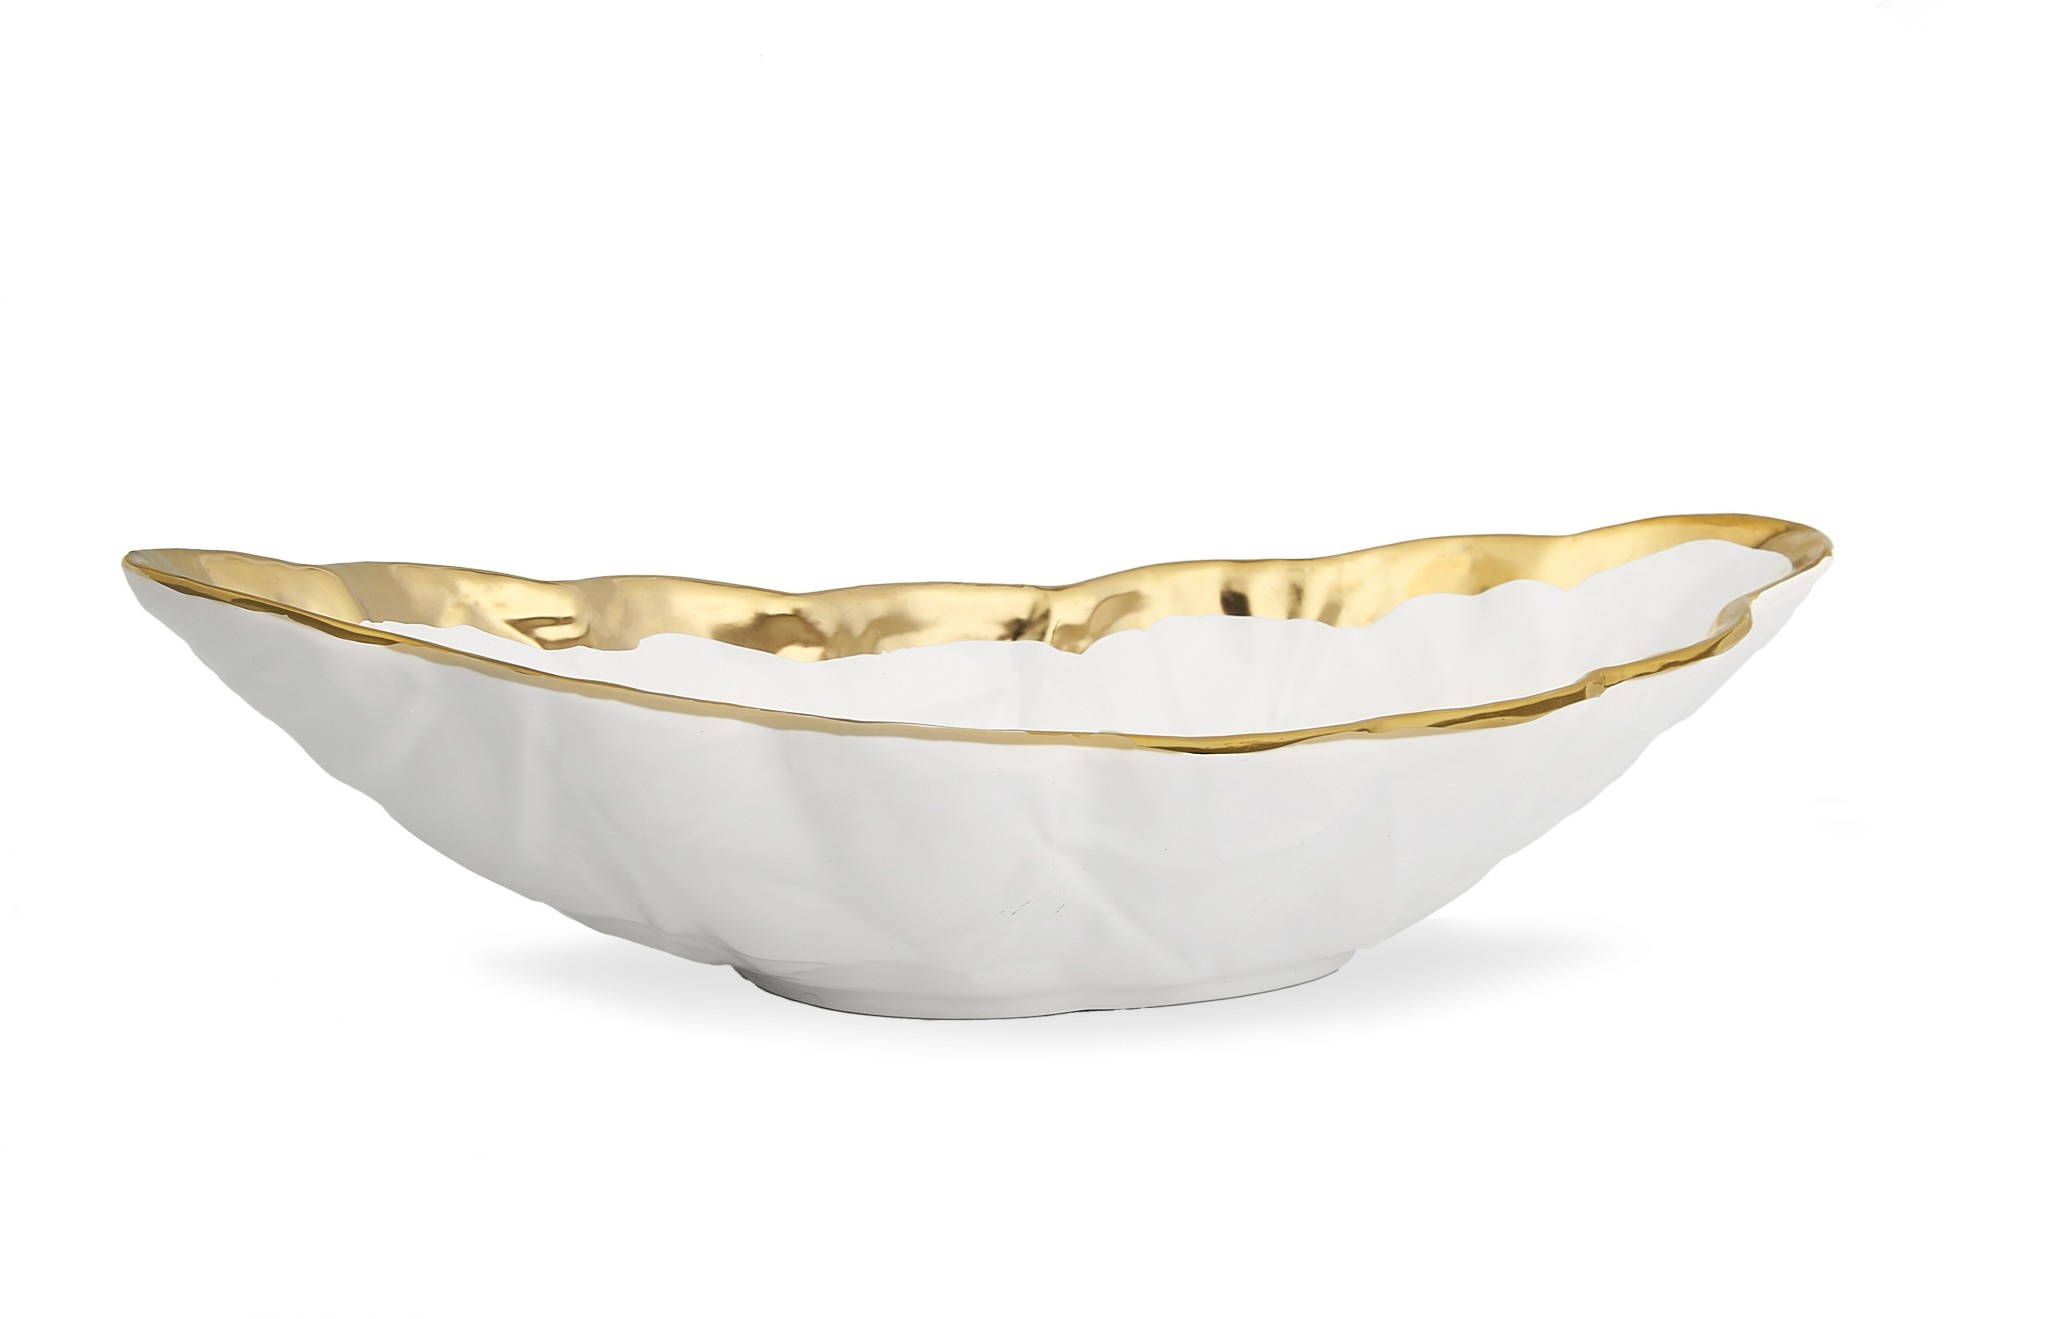 White Deep Oval Shaped Bowl With Gold Rim